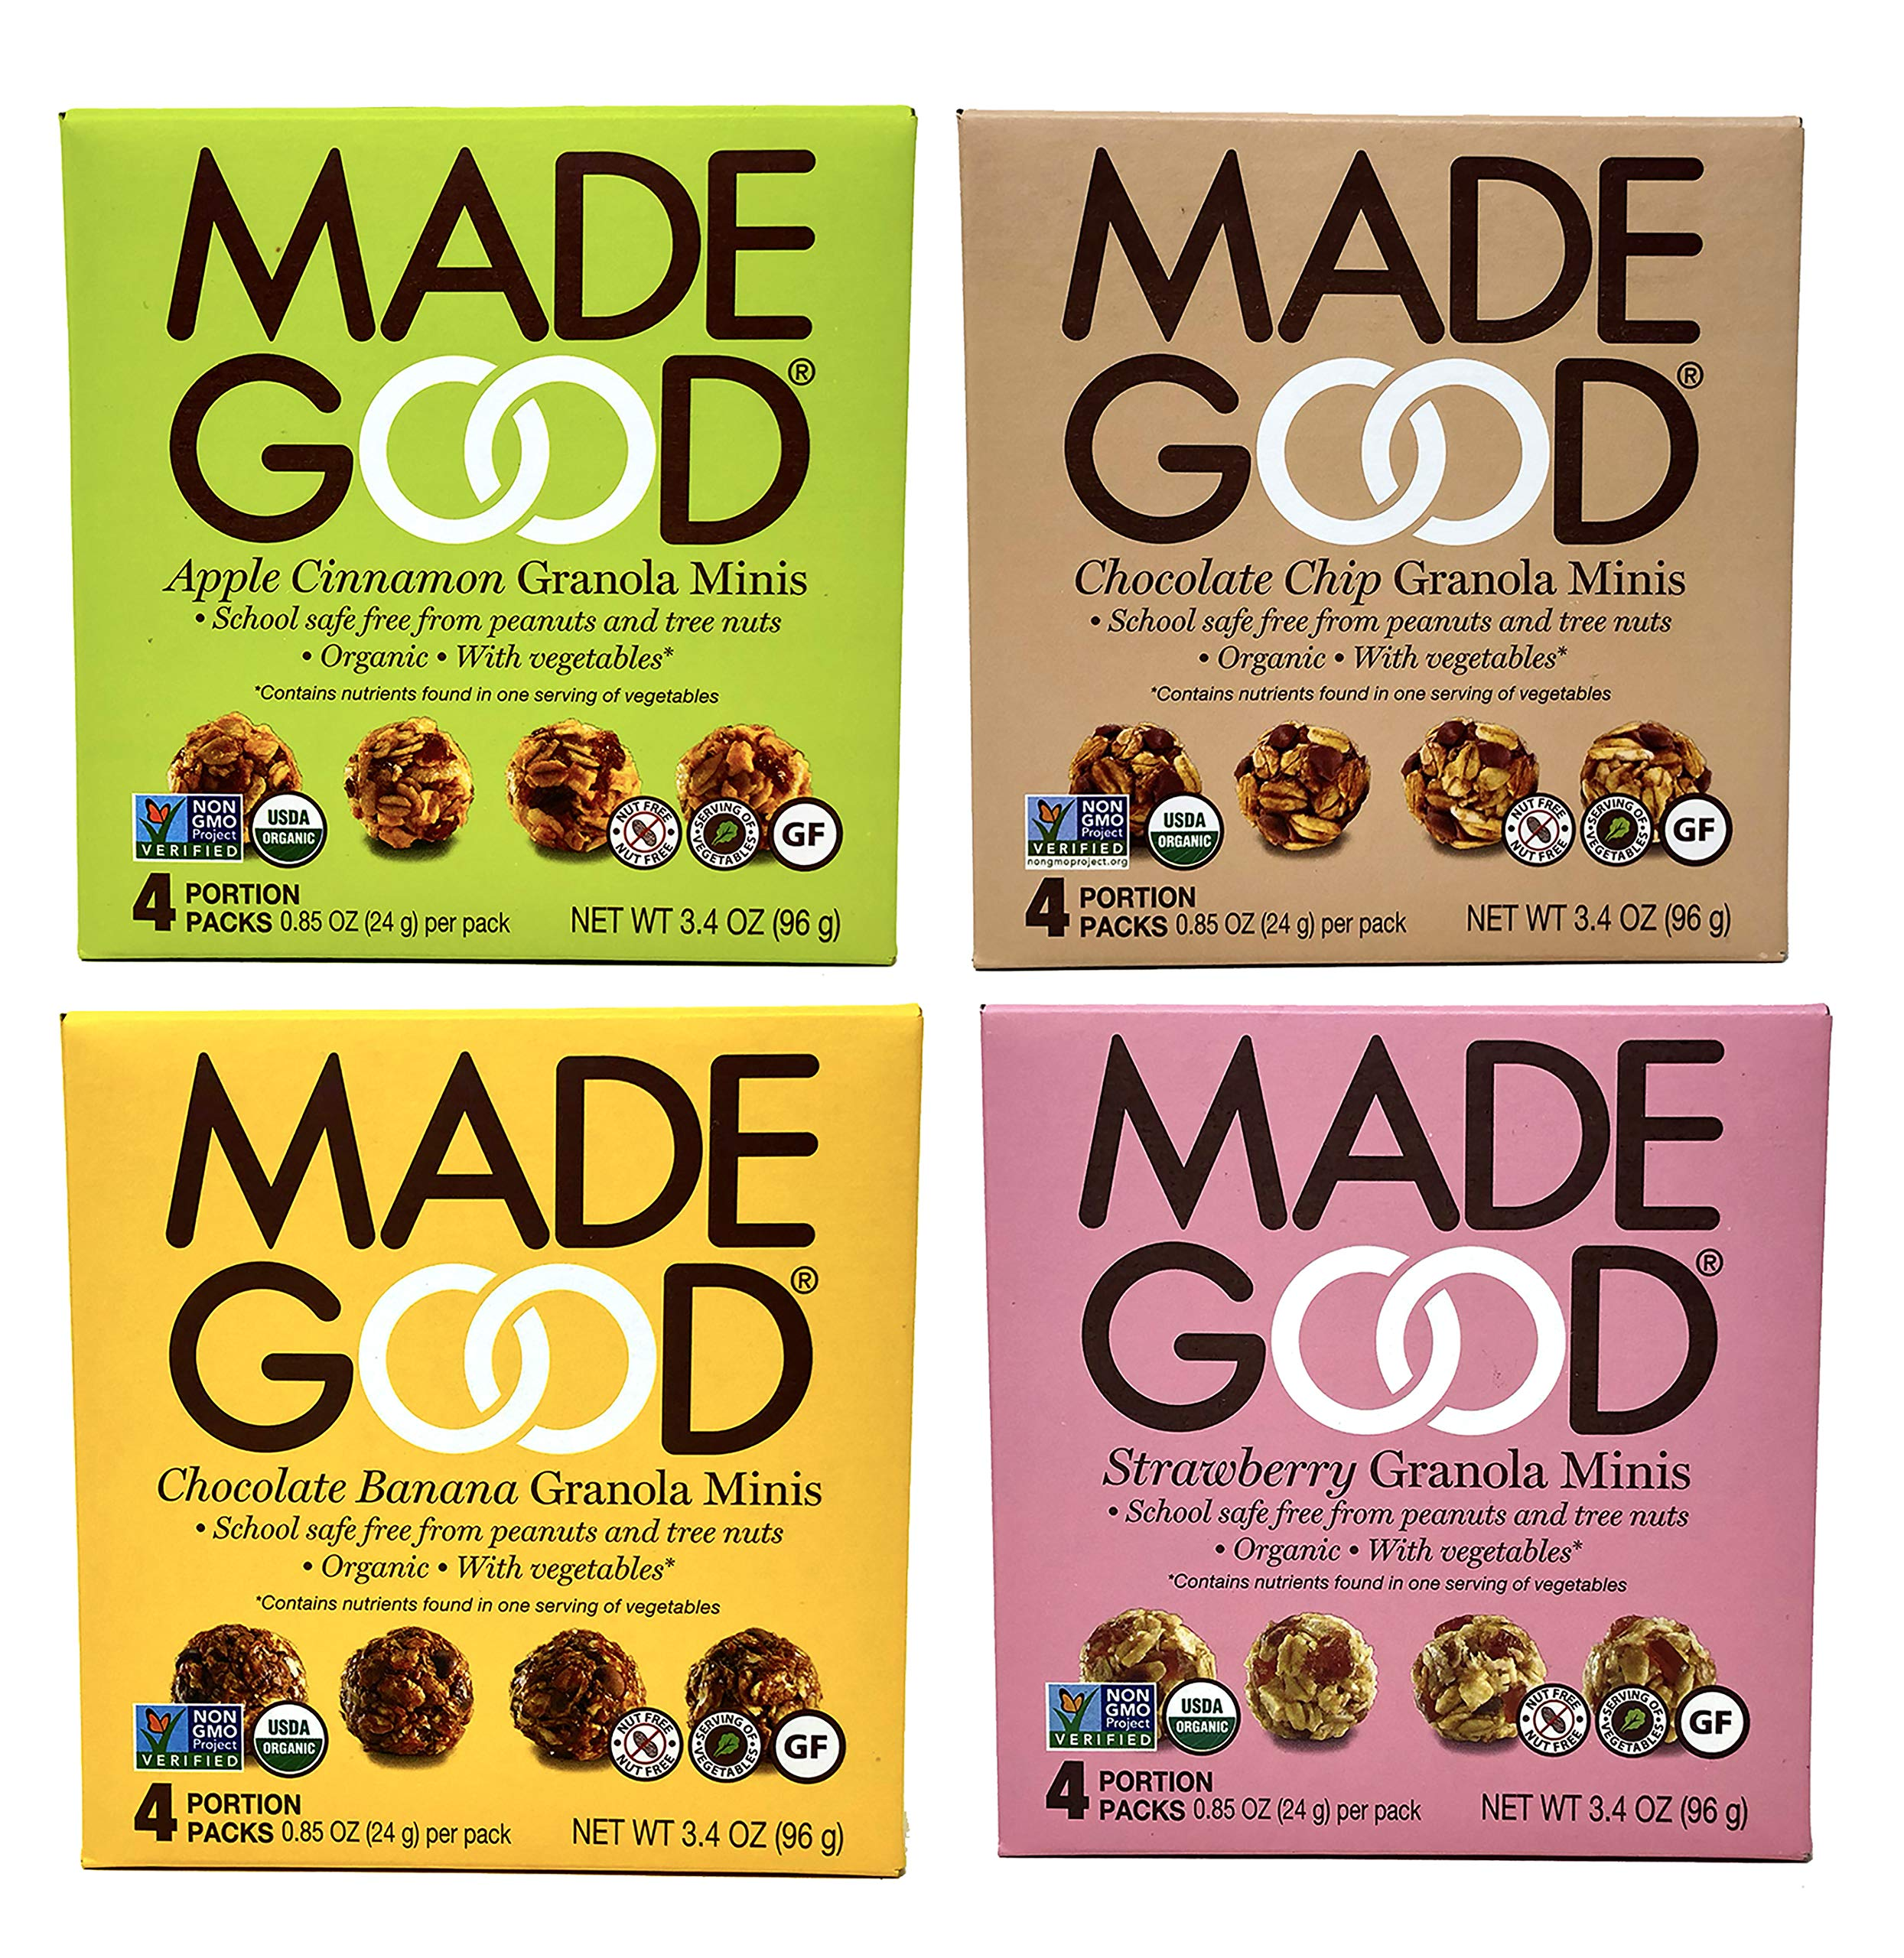 Made Good Organic Granola Minis - Variety Pack of 4 Flavors -Tree-Nut and Peanut-Free, Gluten-Free, Vegan, Kosher (4 Portion Packs Per Flavor) by MadeGood Snacks